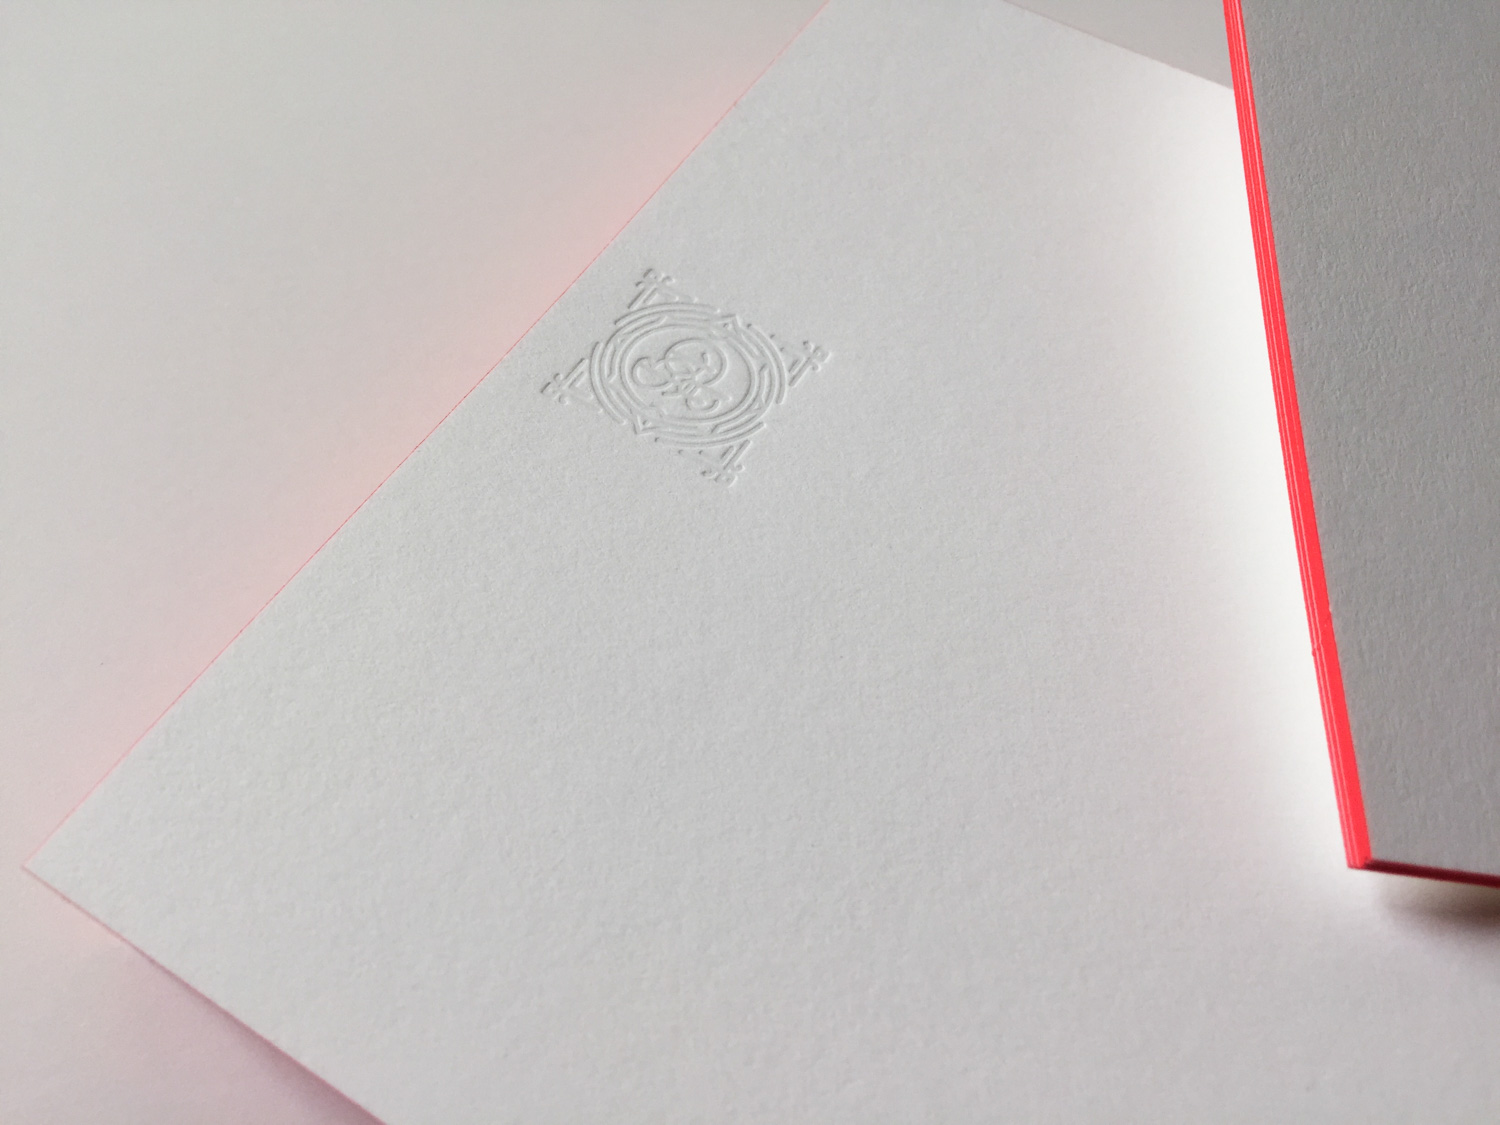 Letterpressed and edge painted notecards by Studio On Fire